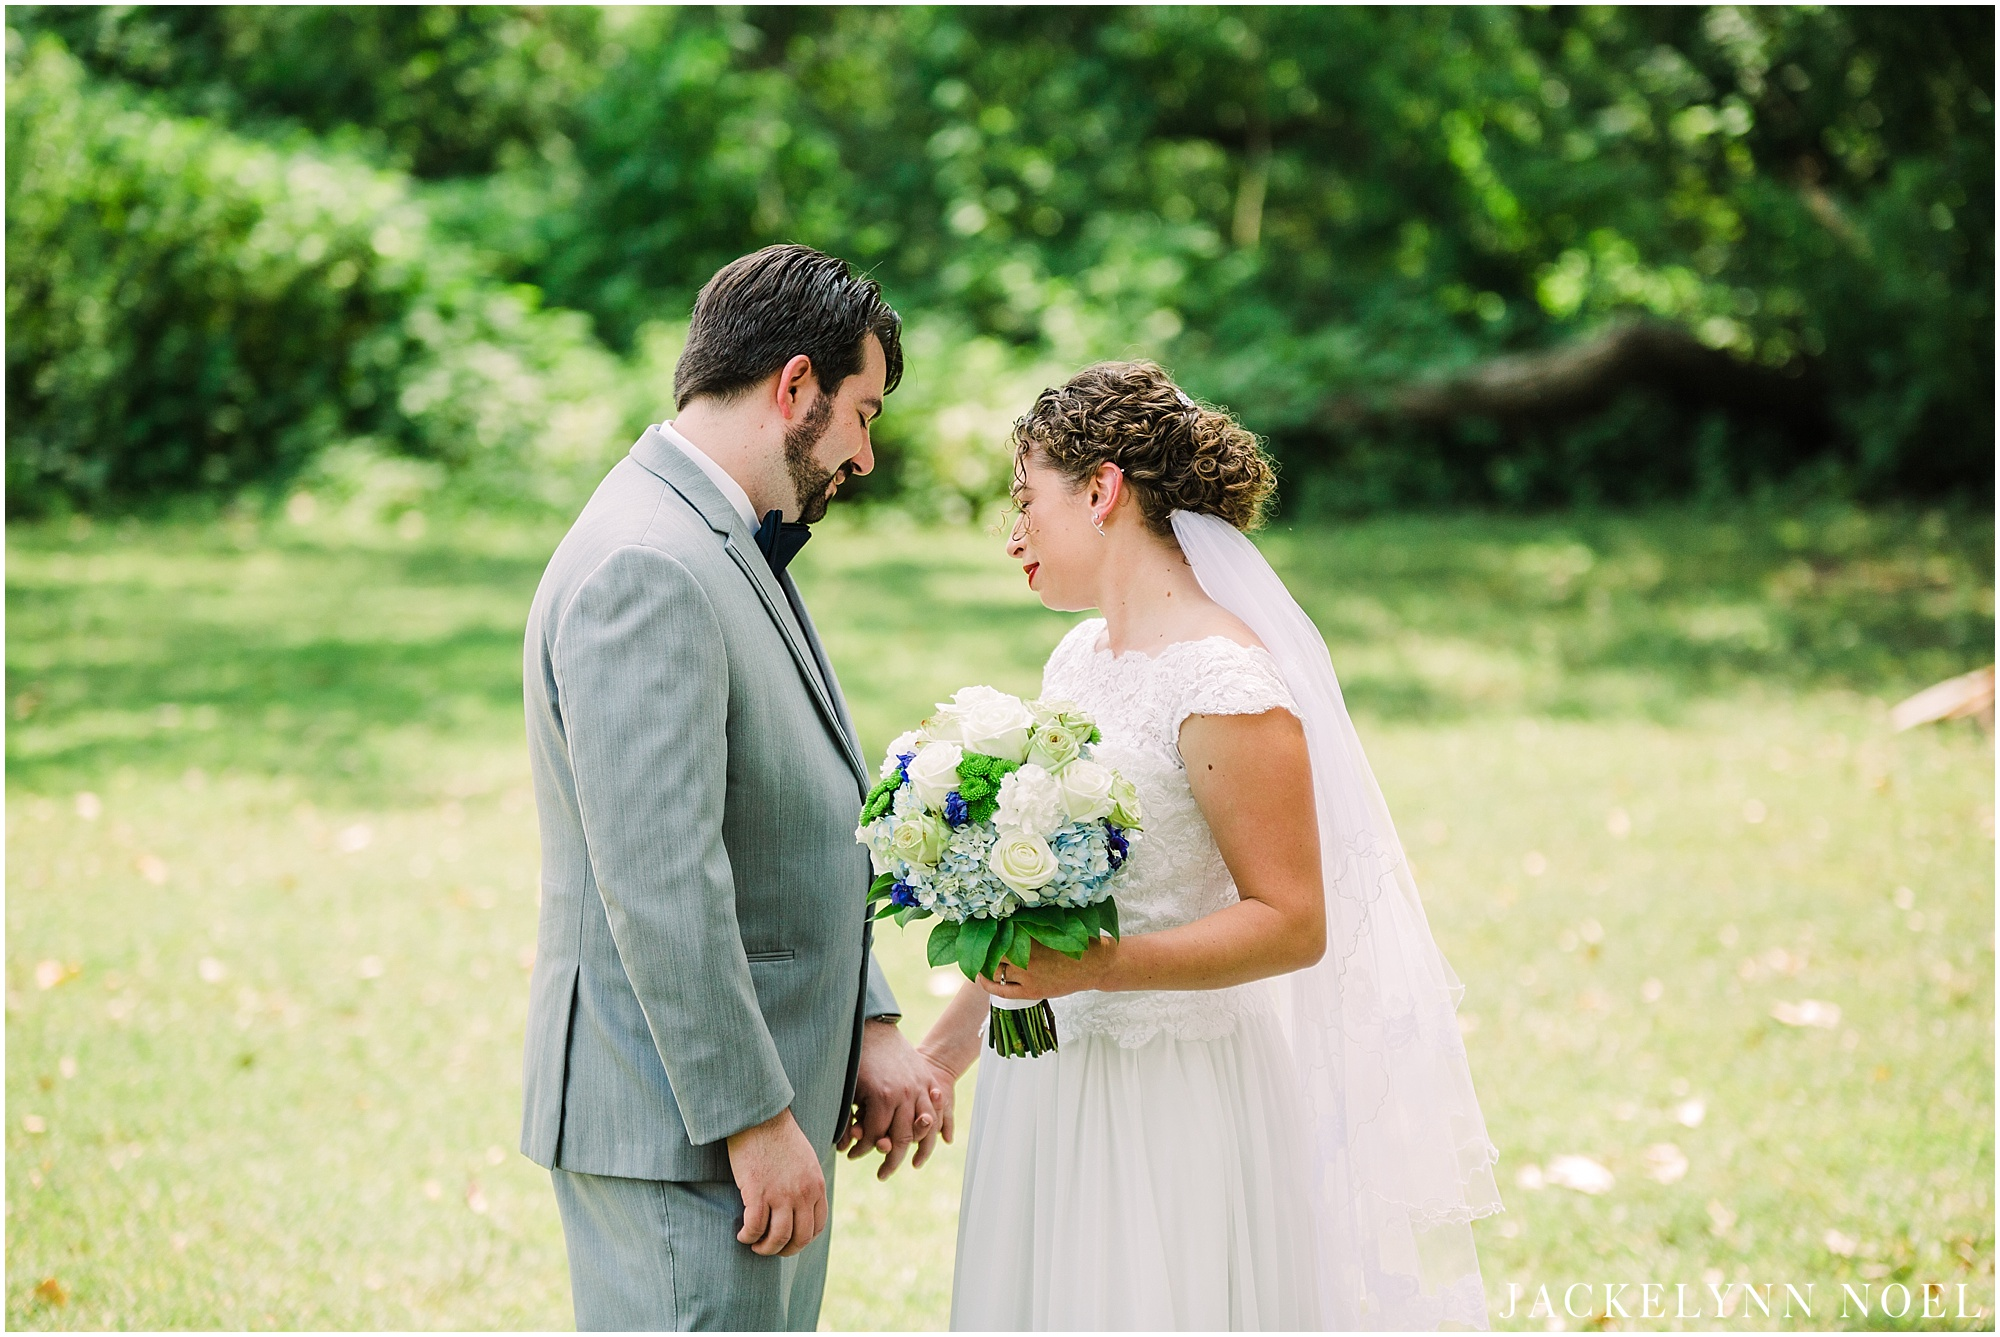 Steph and Jasper Married in St. Charles by Jackelynn Noel Photography